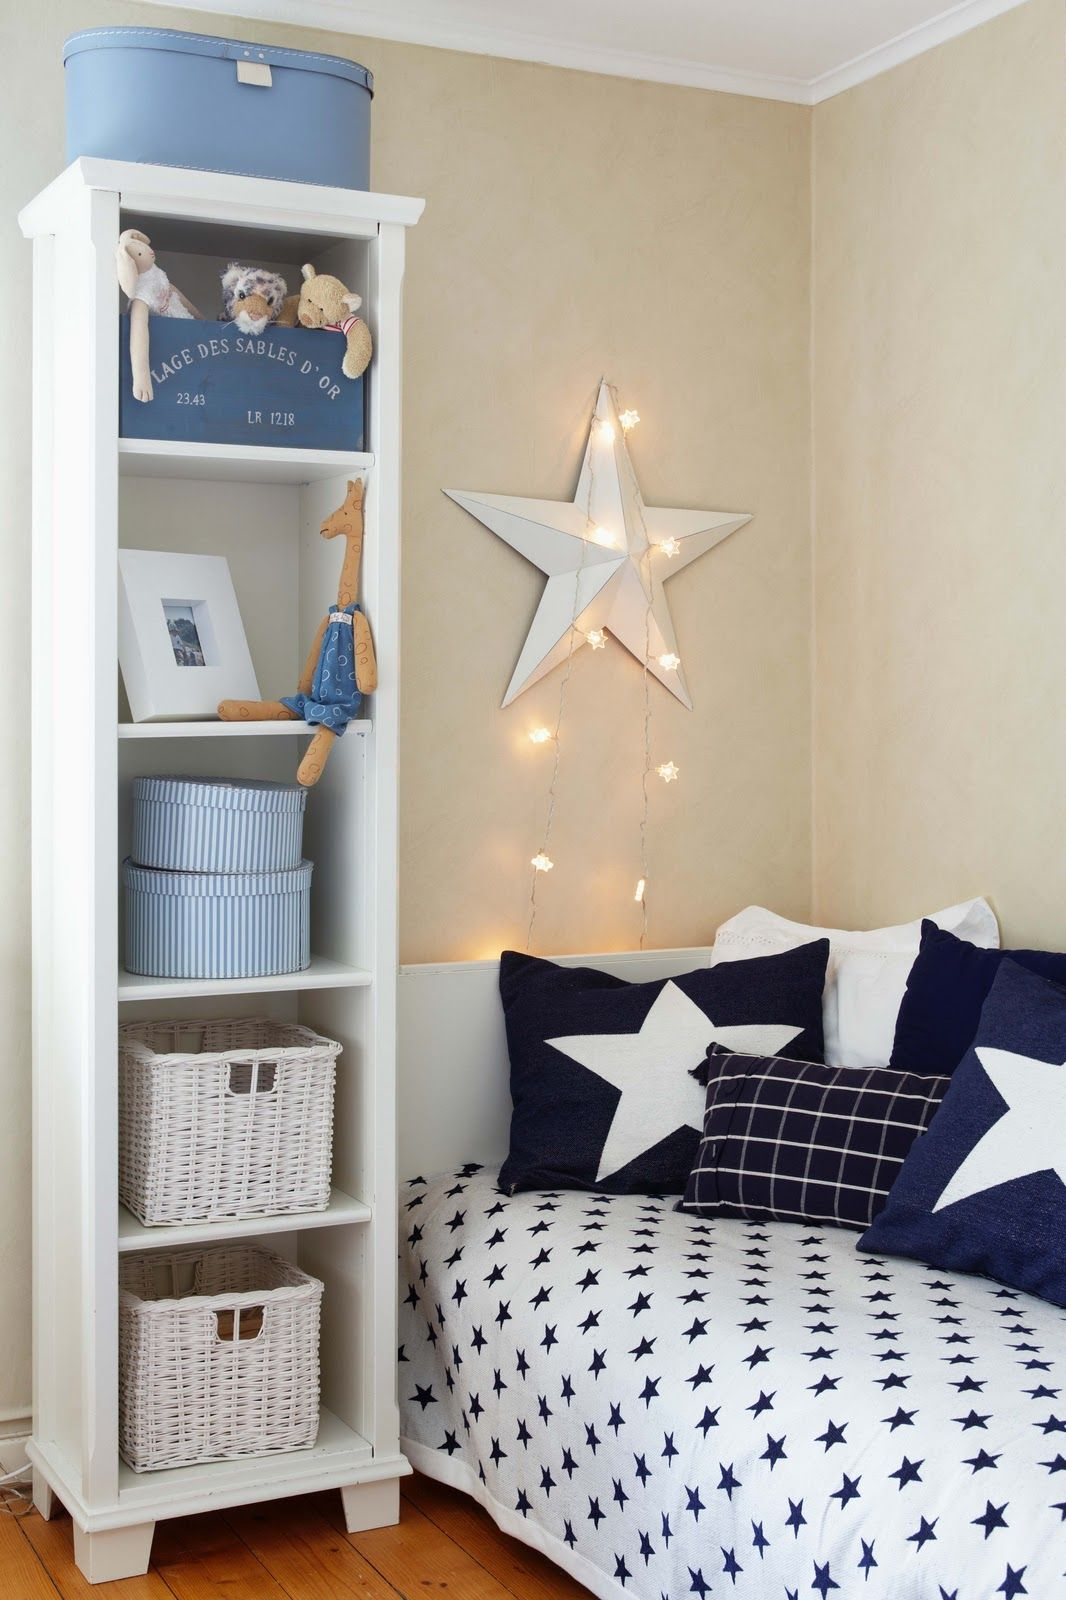 Guss Room Has A Star Quilt And Star Fairy LightsI Just Need - Boys fairy lights for bedroom